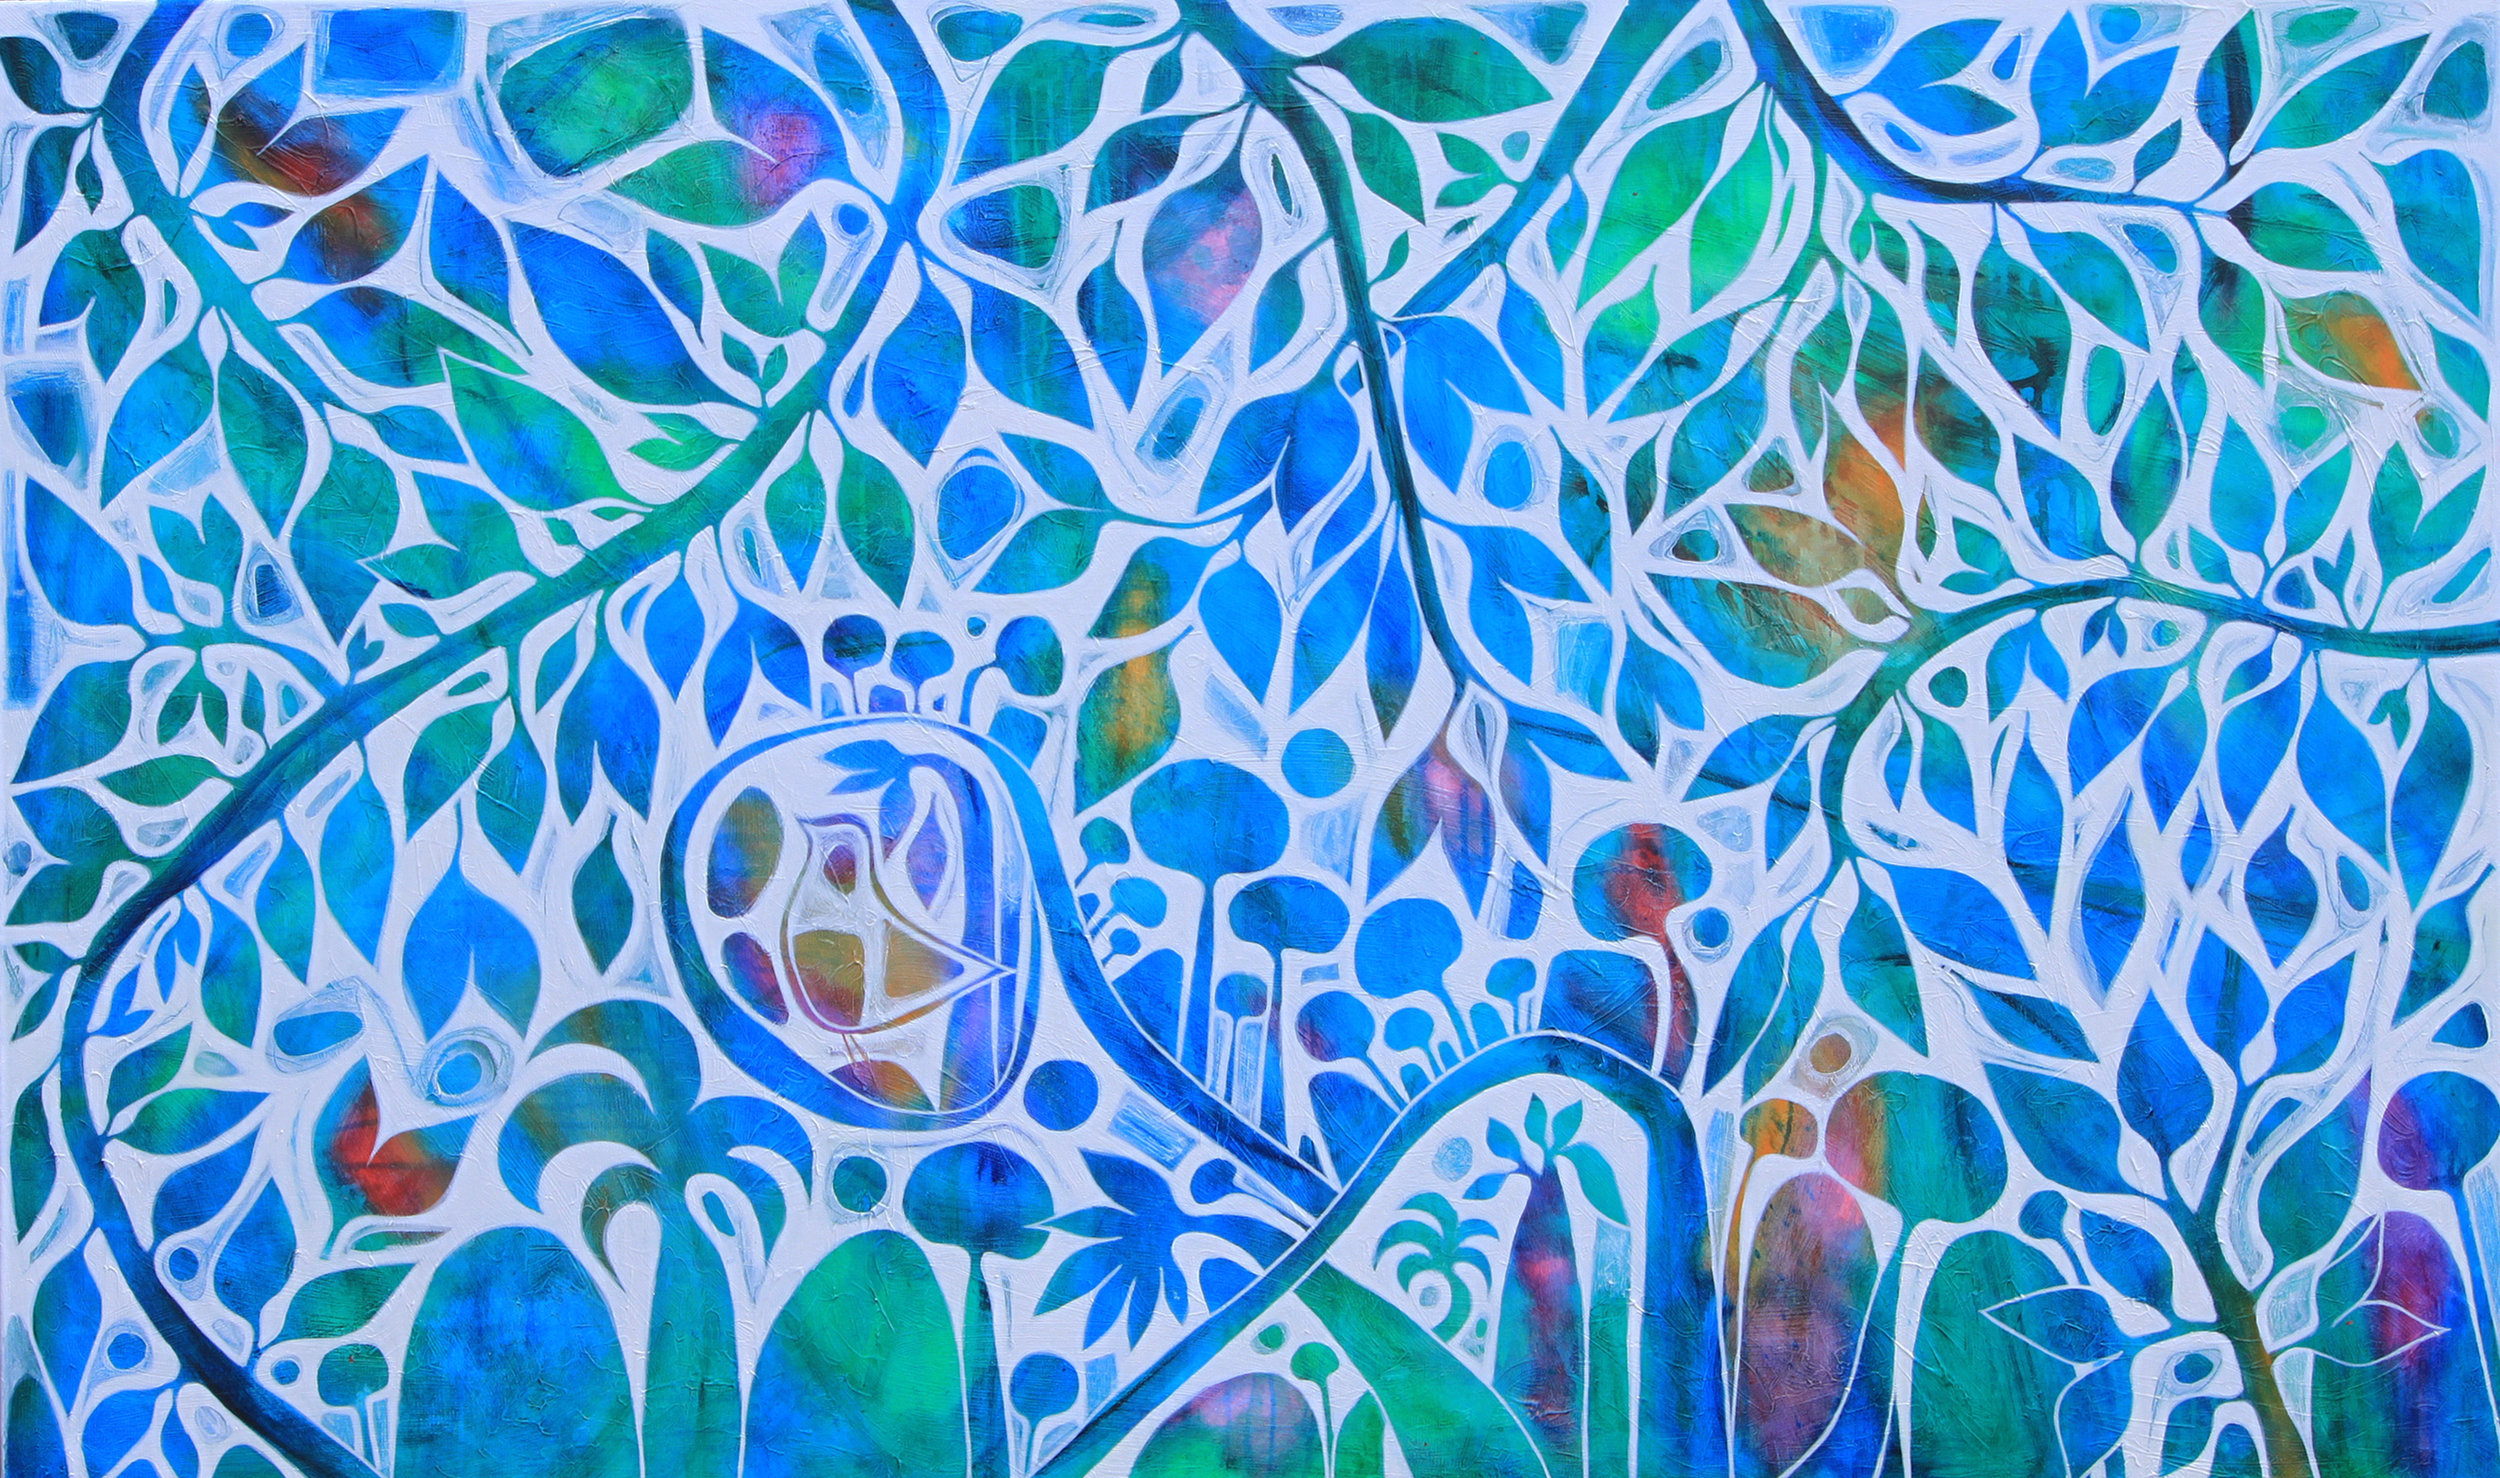 Canopy of dreams 152x92cm